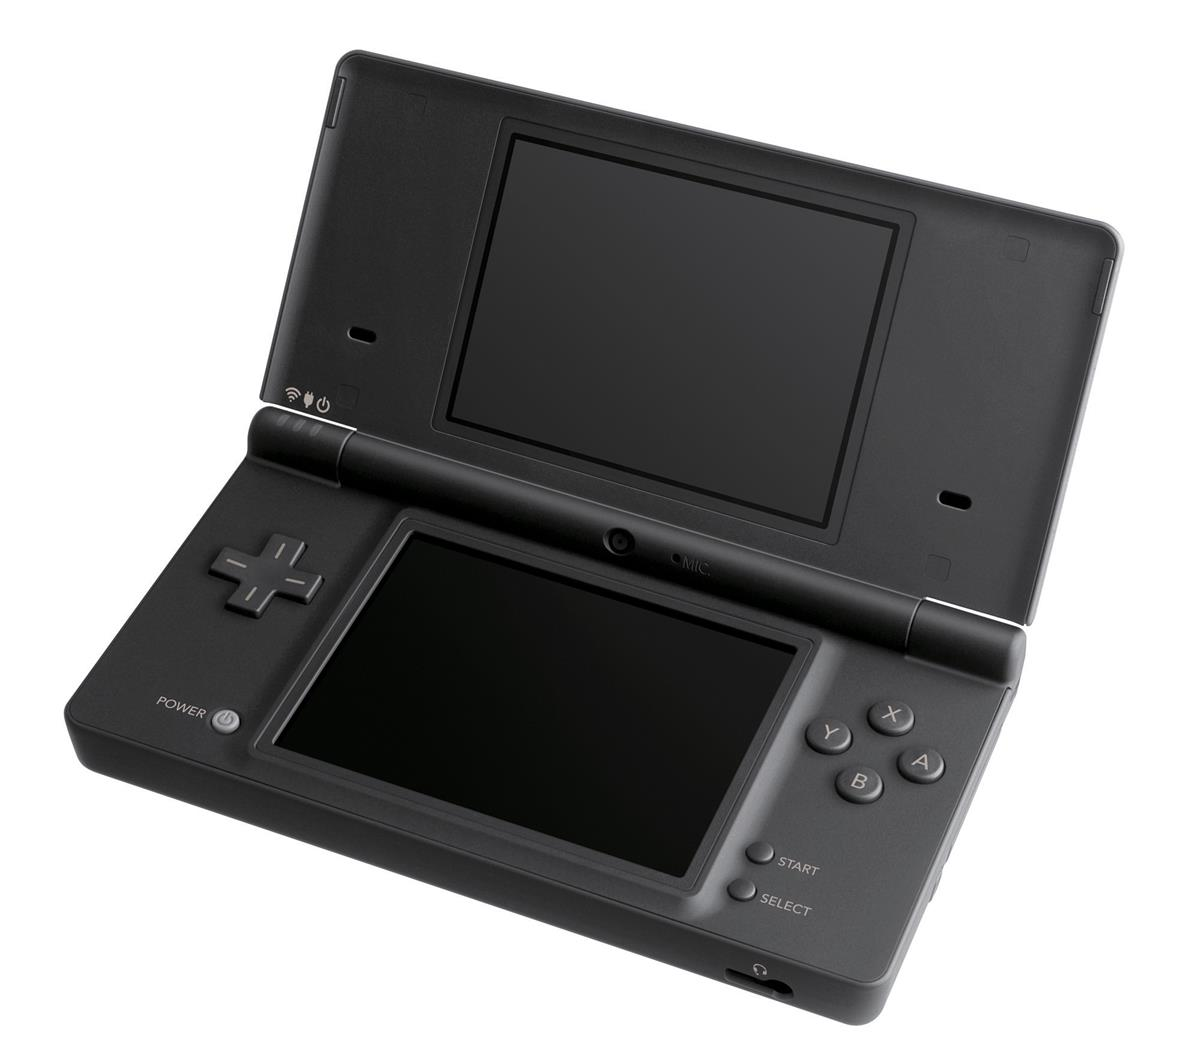 Nintendo DS Lite - Promotion Bundle